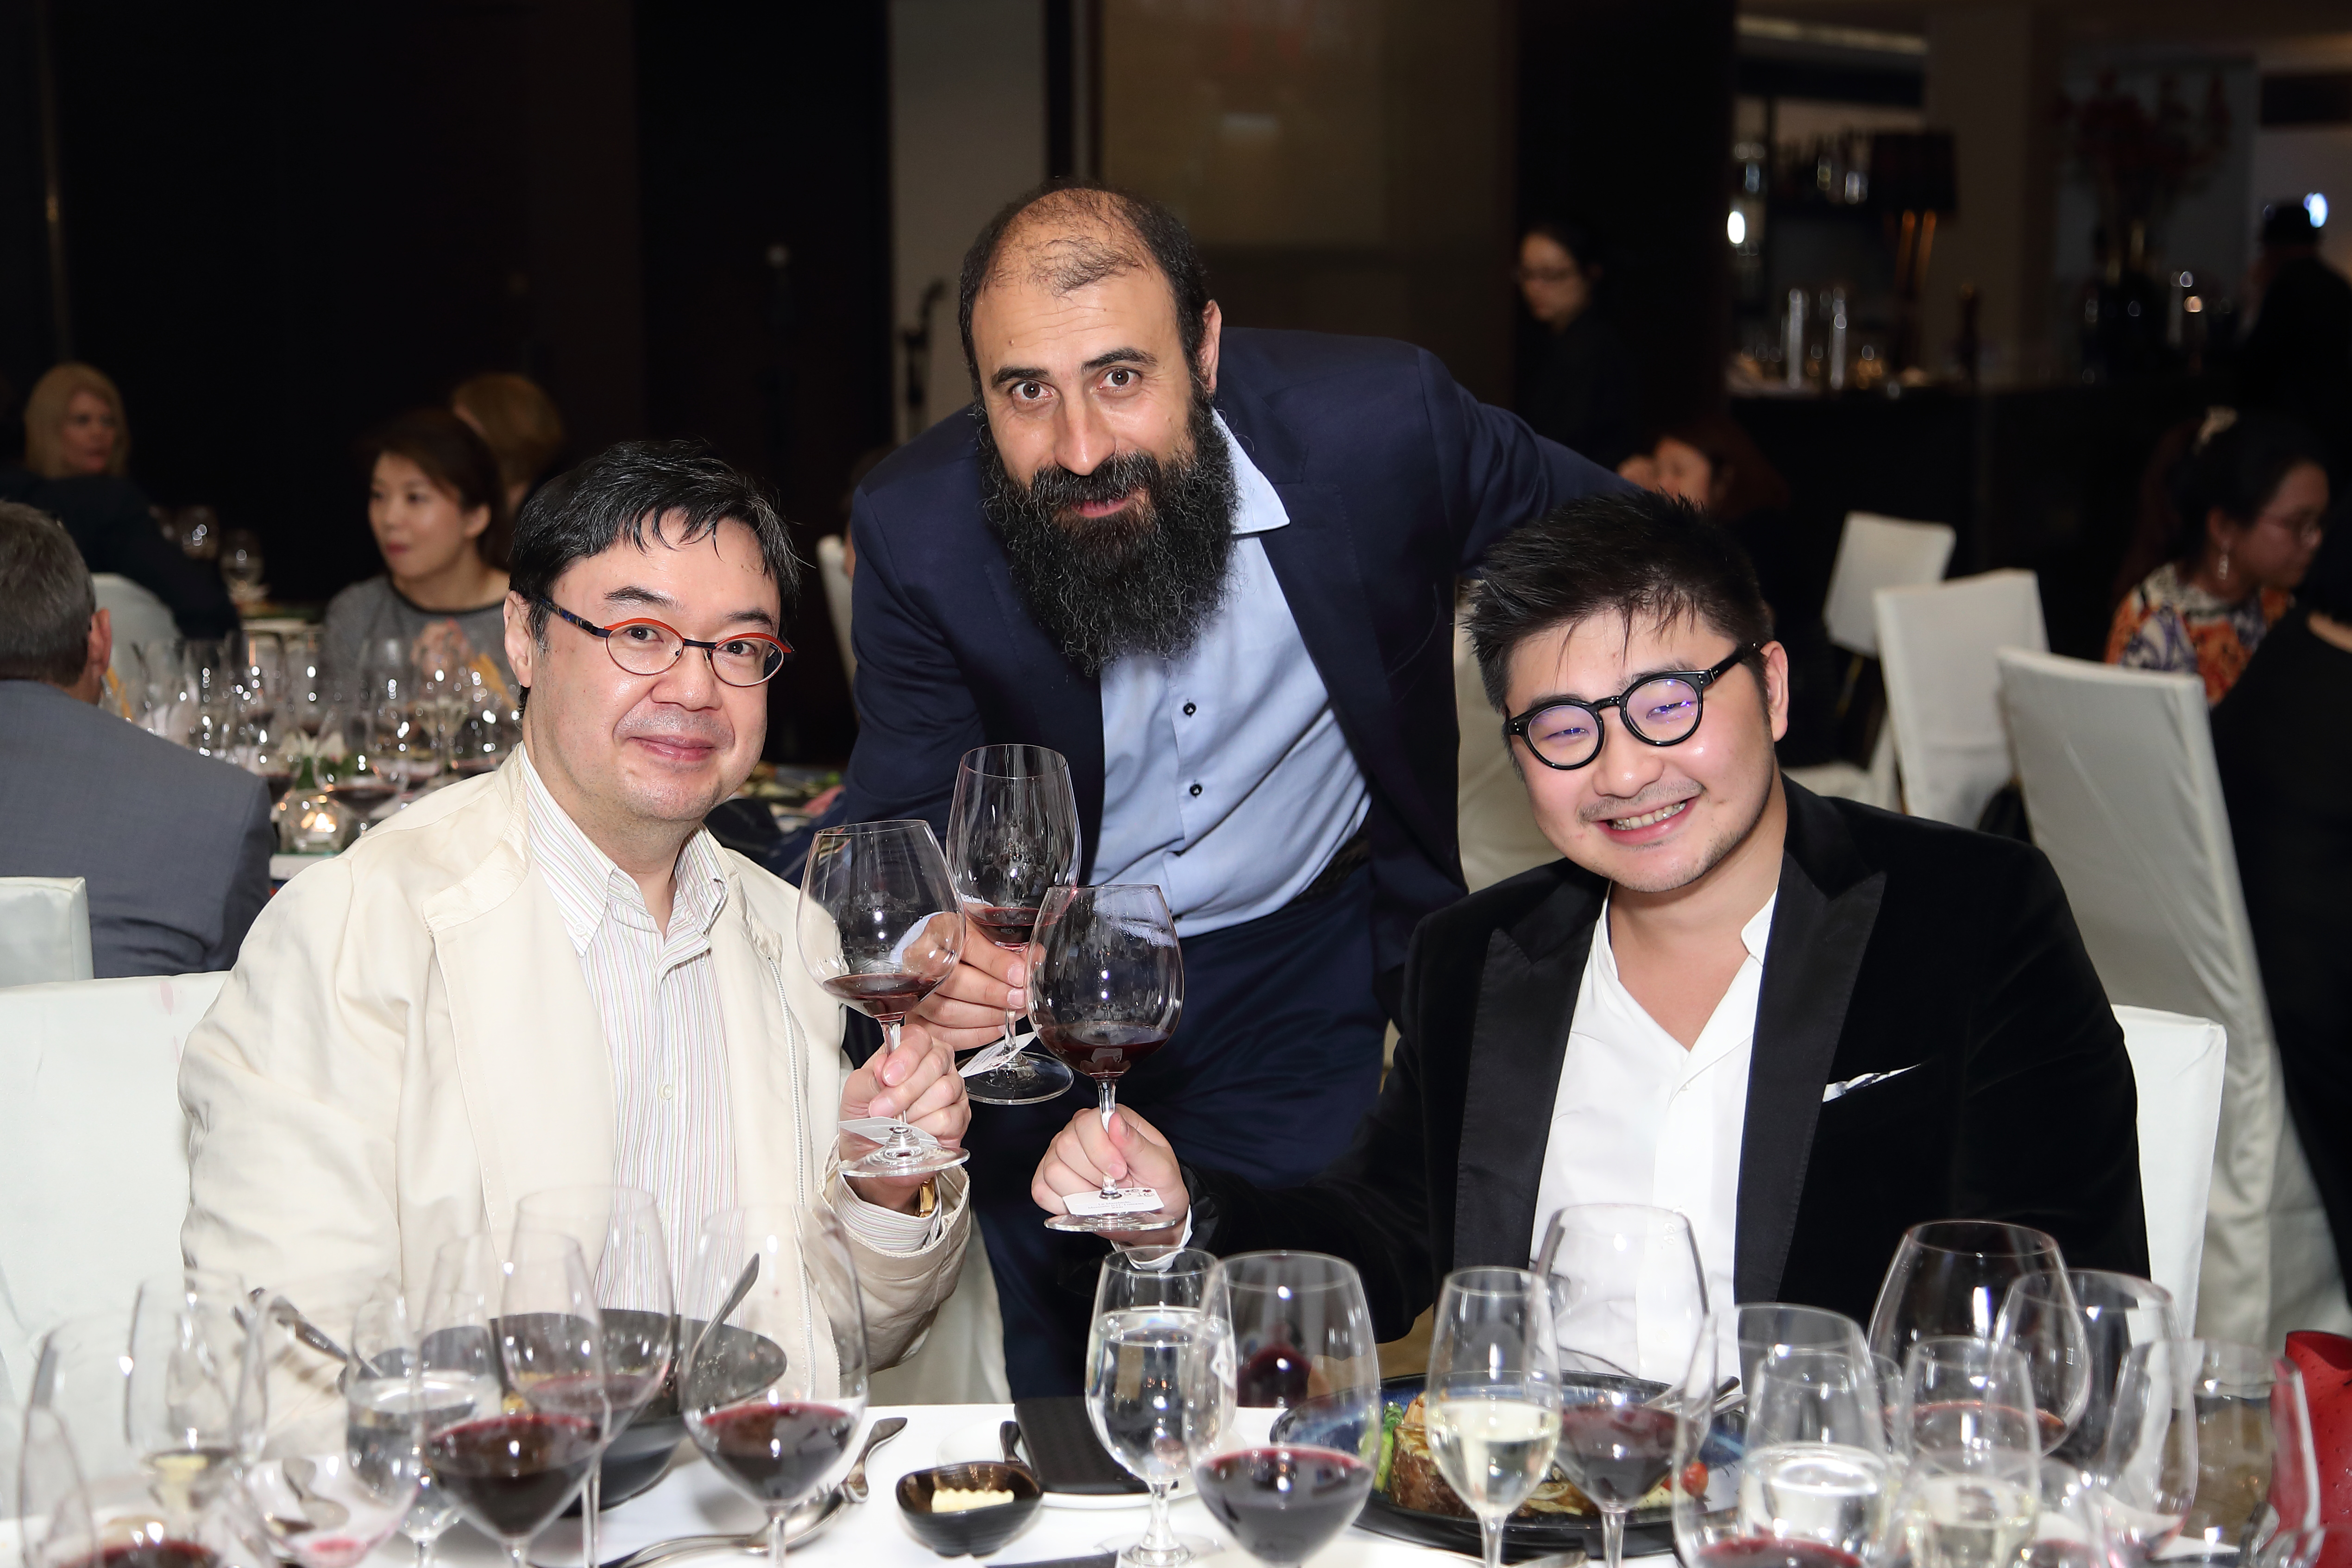 Le Macchiole Wine Dinner with Gianluca Putzolu - 10 May 2019